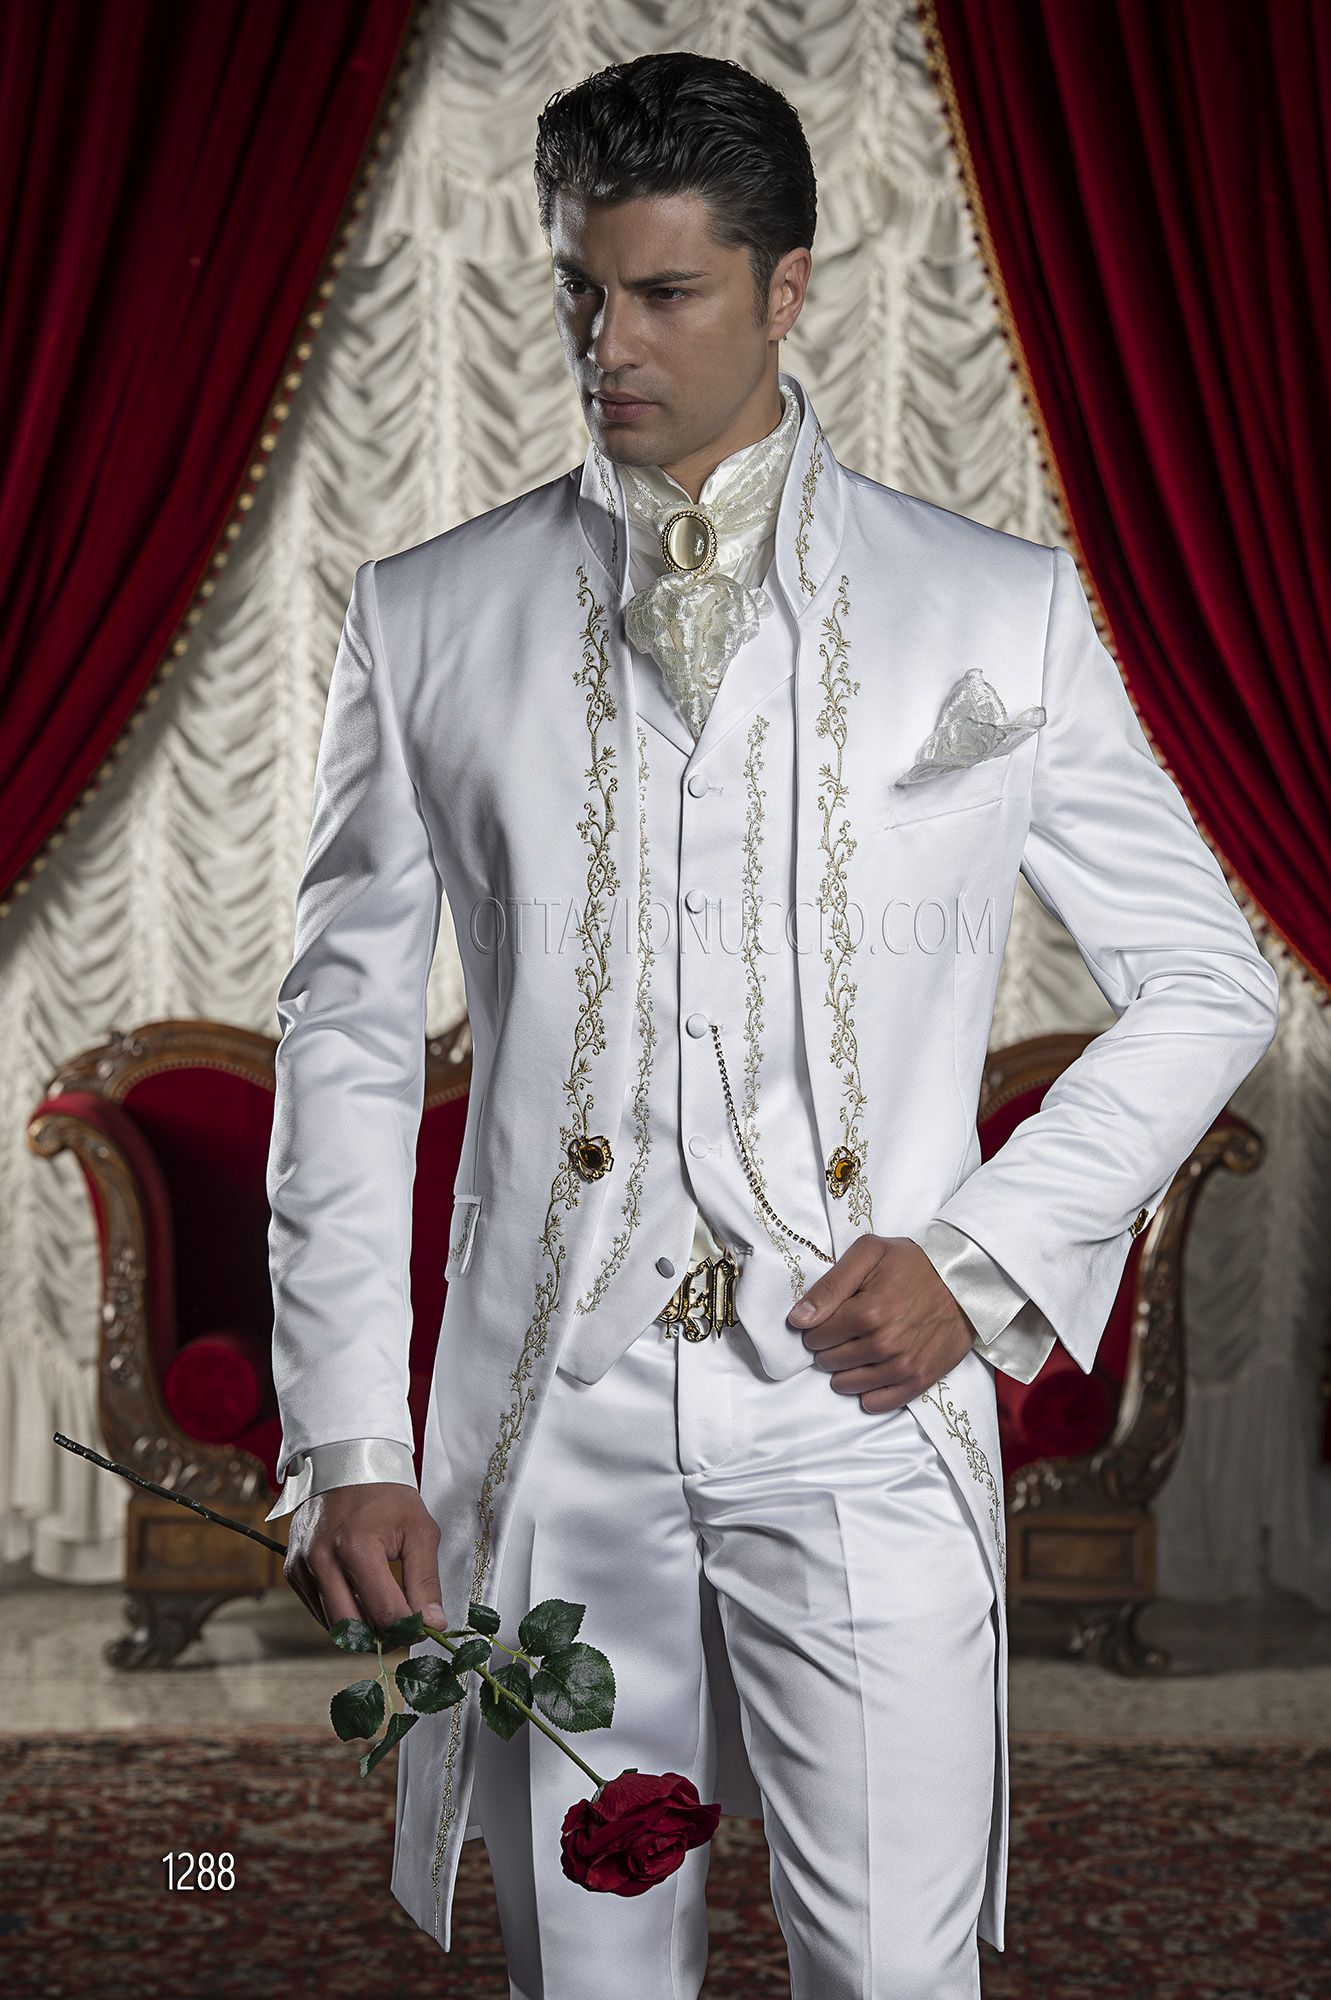 Awesome Wedding Zoot Suit Pictures - Colorful Wedding Dress Ideas ...